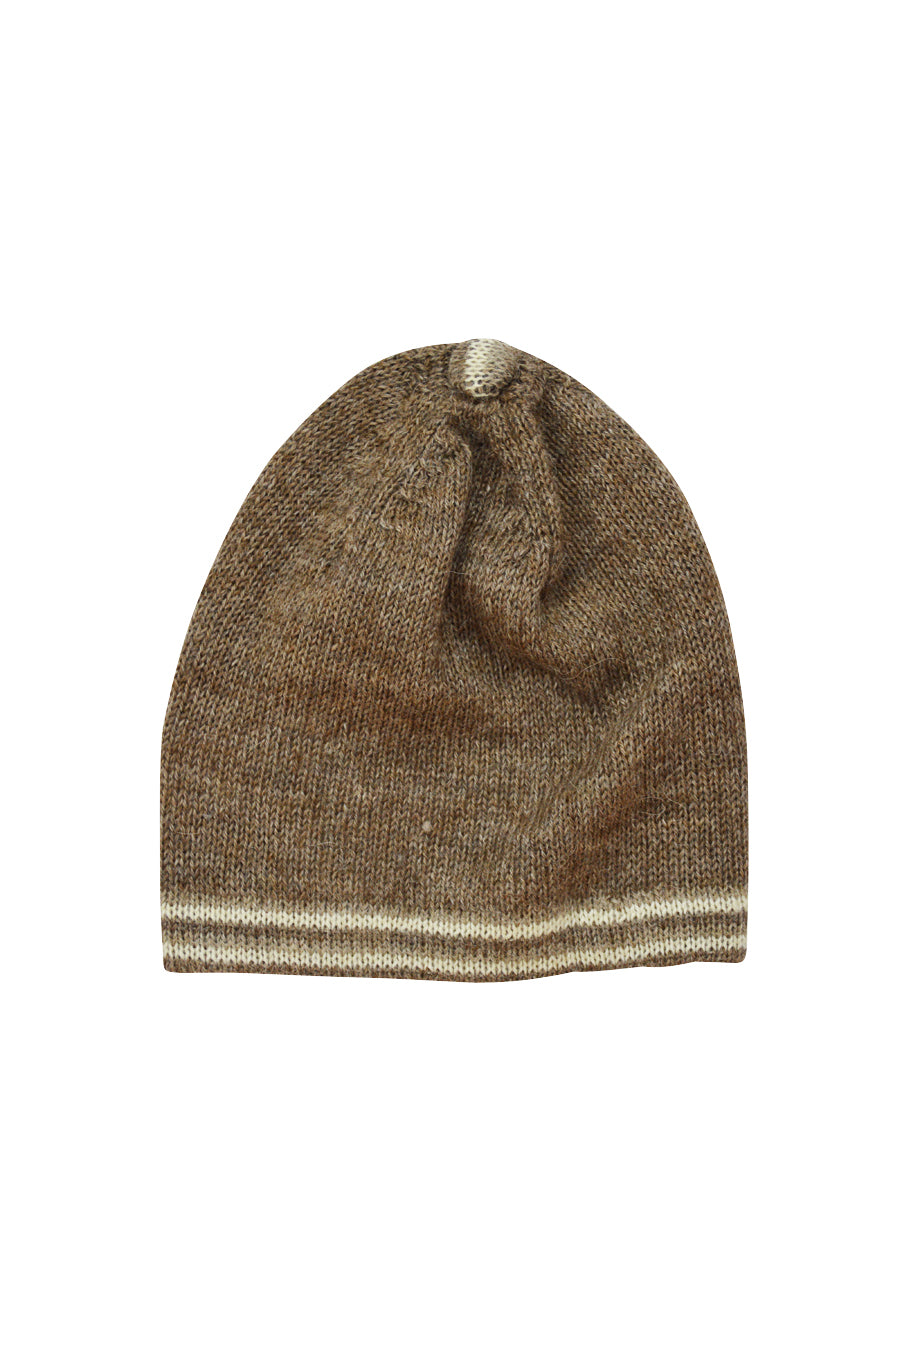 Brown Alpaca Hat - Little Threads Inc. Children's Clothing